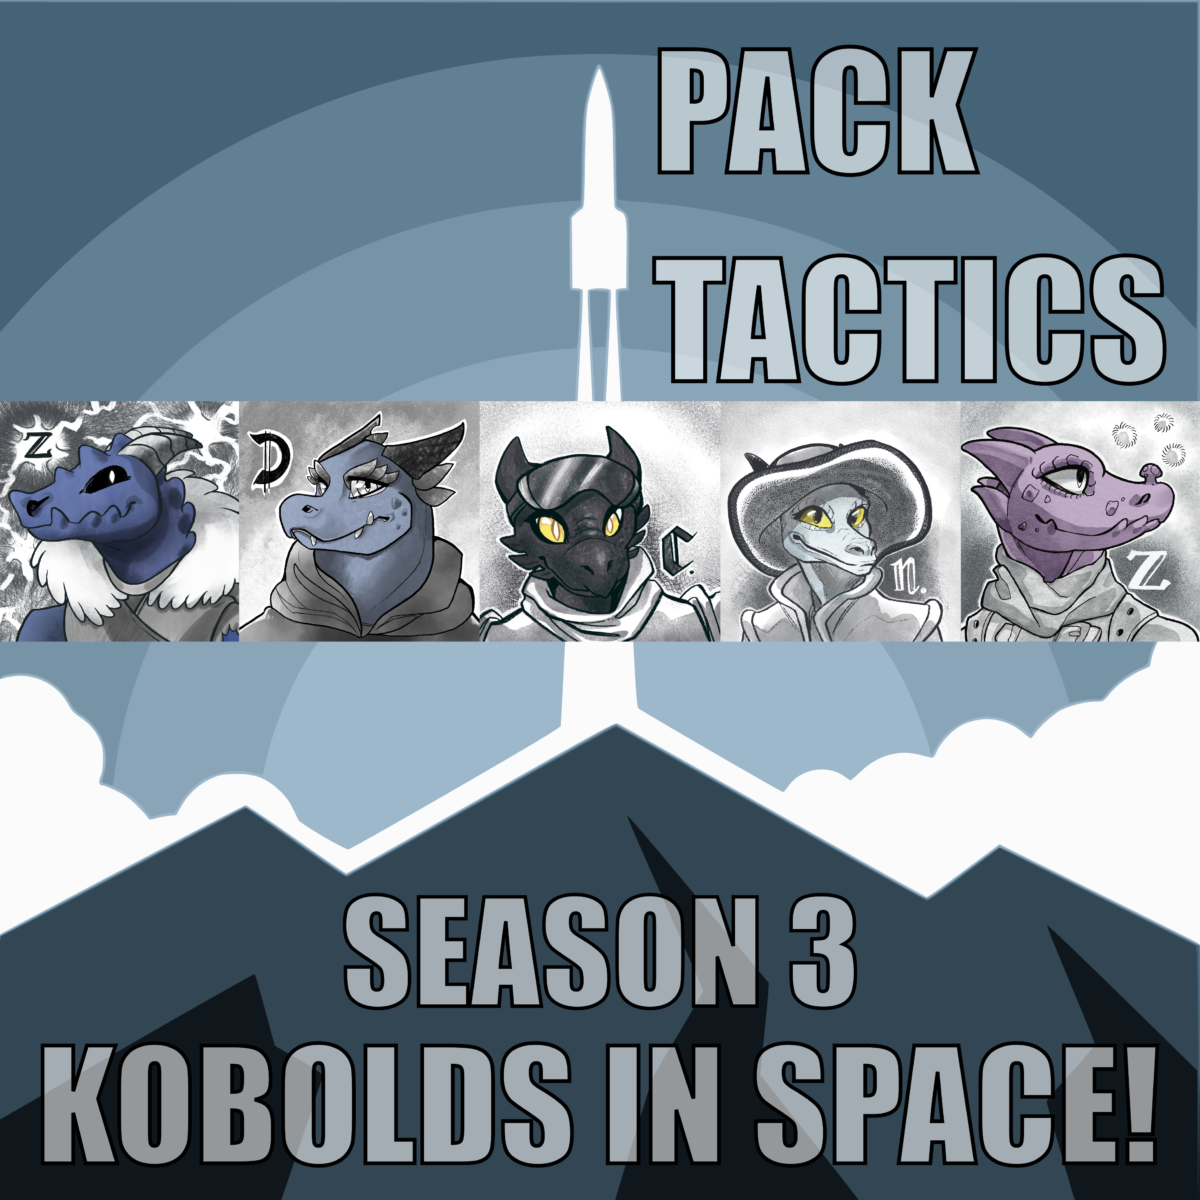 Pack Tactics S3 Ep 07: And Beyond